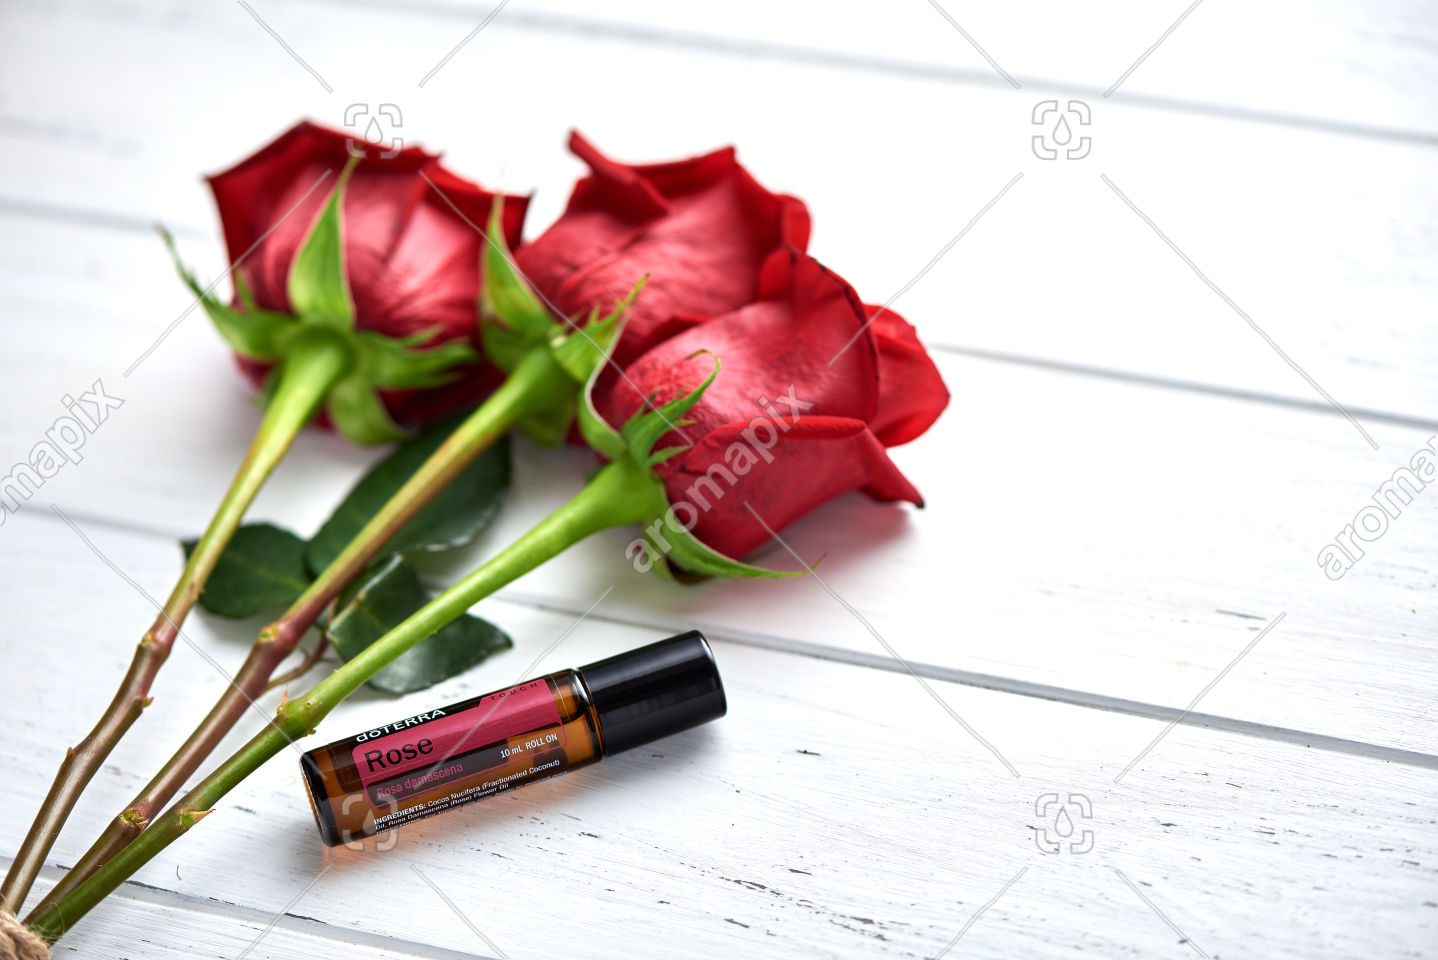 doTERRA Rose with roses on white